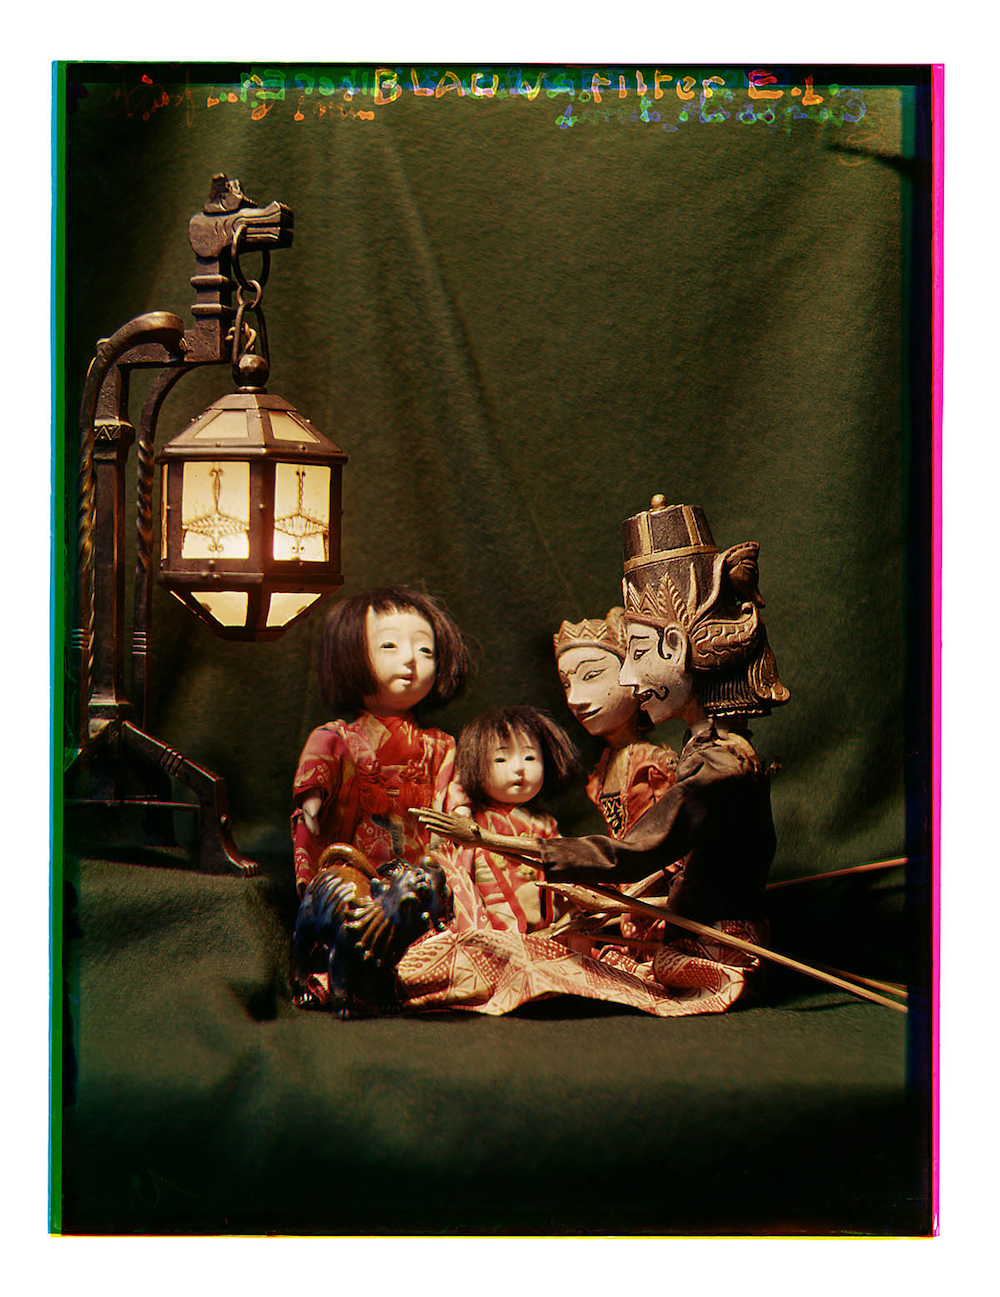 Bernard Eilers, still life, lamp, dolls, photography